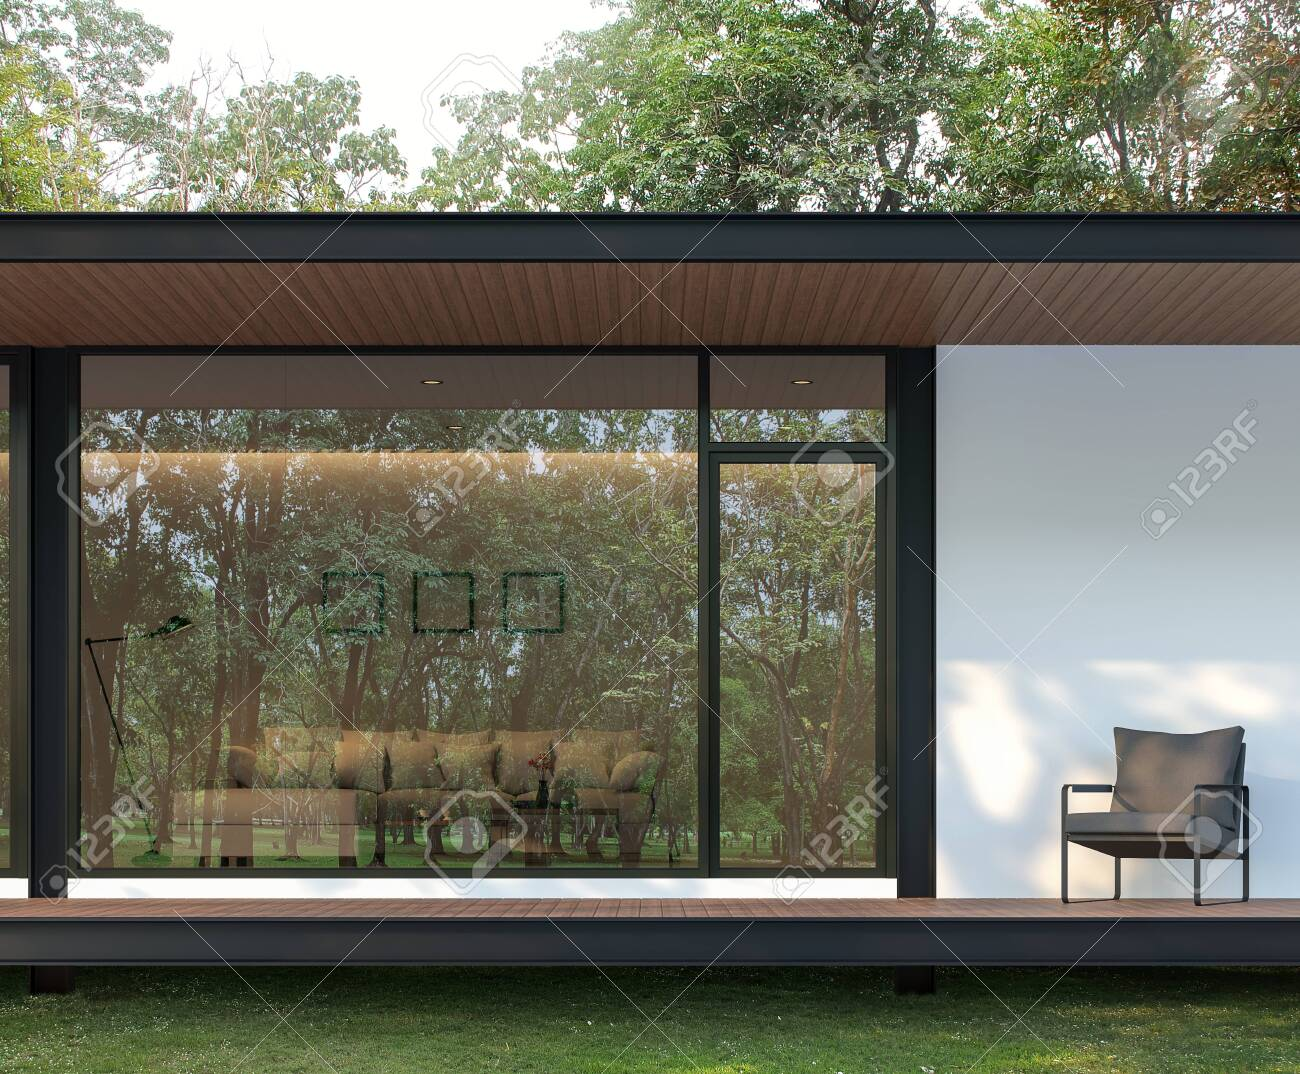 Exterior of modern house terrace in the garden 3d render, There are wooden floor and ceiling, There is a large glass window with a reflection of the surrounding nature. - 120982637